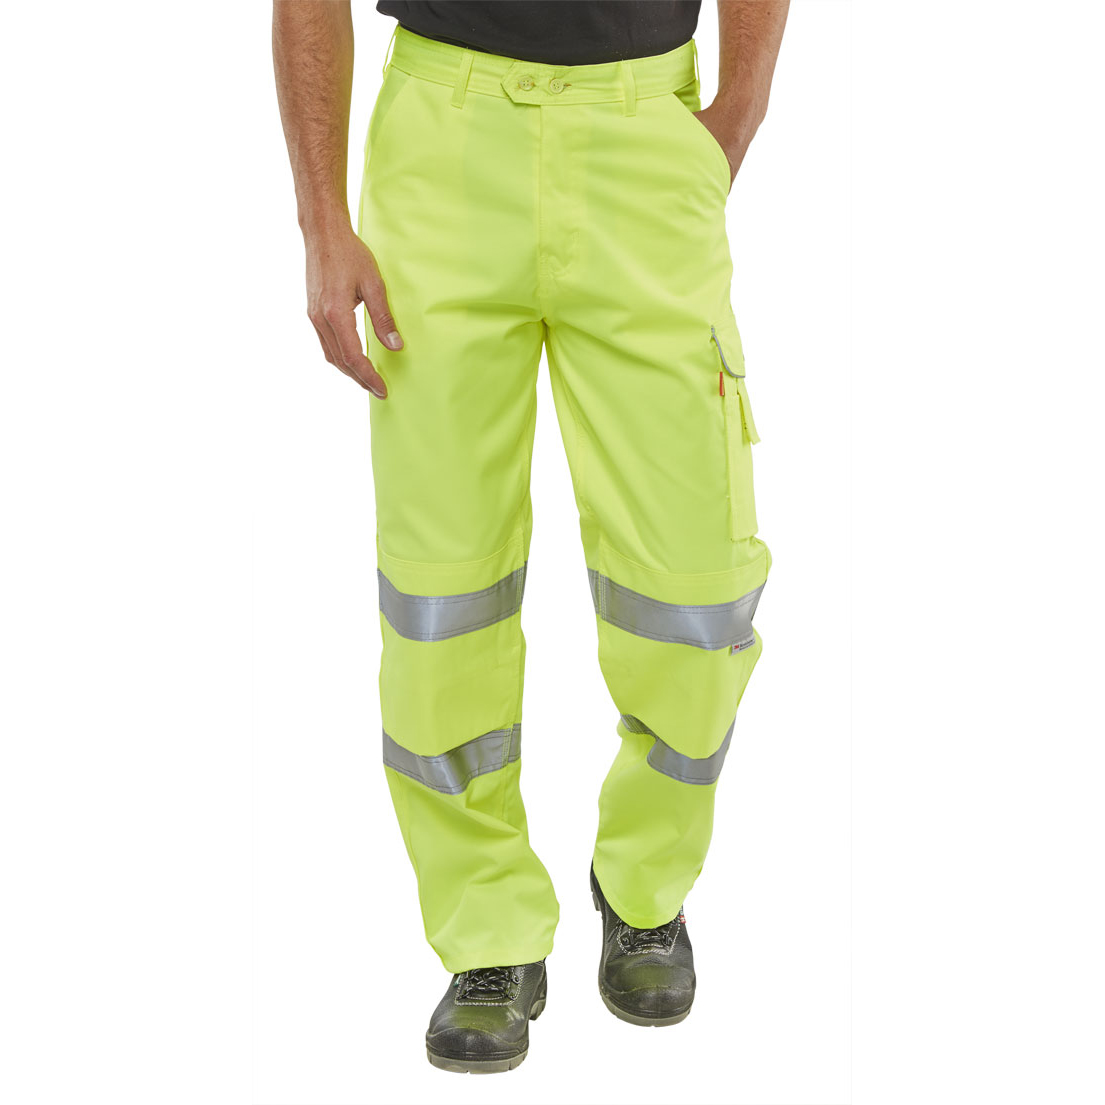 Ladies BSeen Trousers Polycotton Hi-Vis EN471 Saturn Yellow 38 Long Ref PCTENSY38T *Up to 3 Day Leadtime*